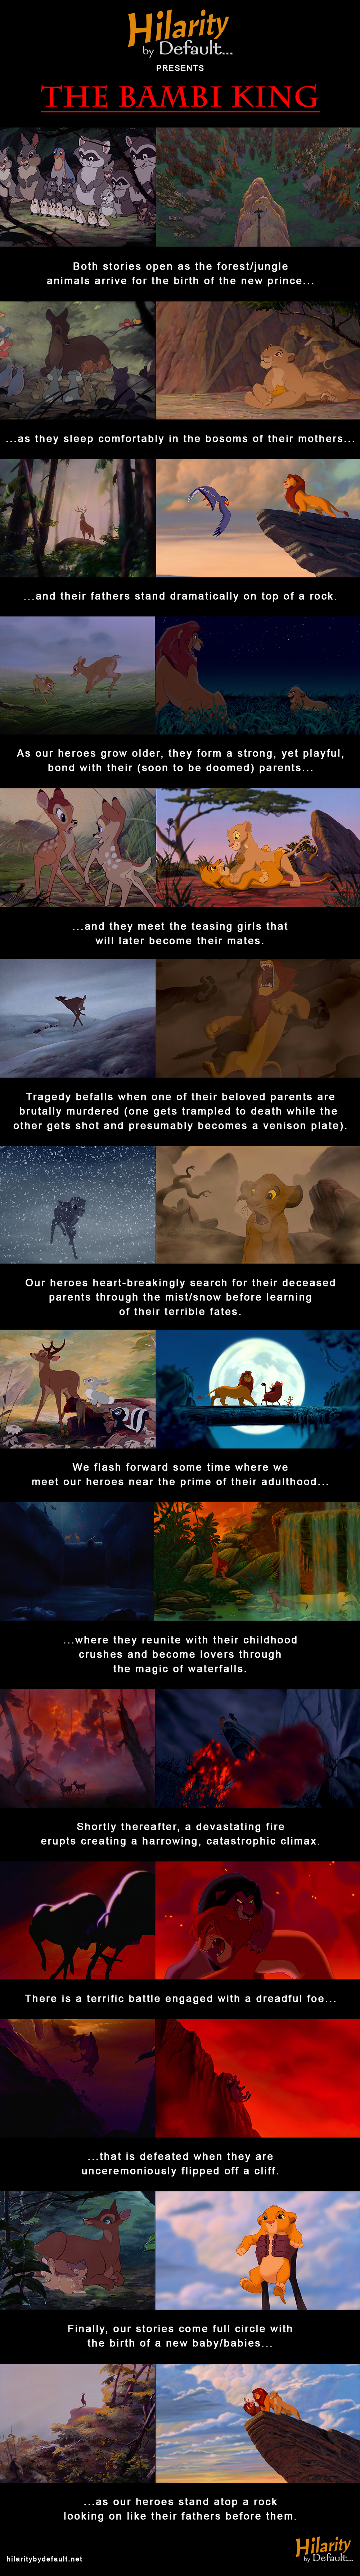 bambi-king-infographic